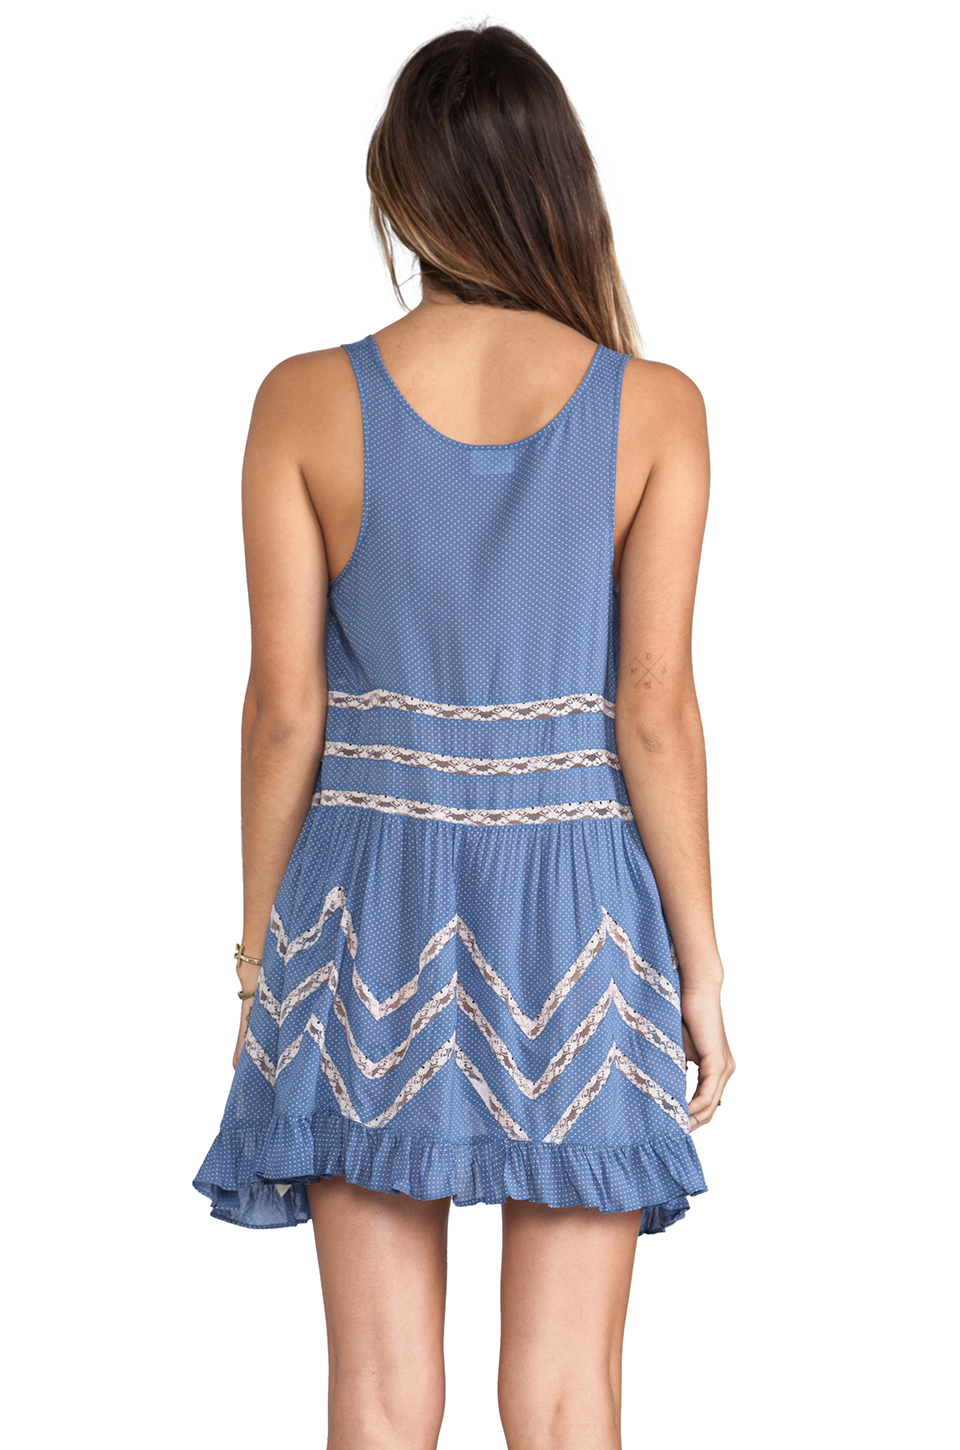 Free People Slip Voile Trapeze Dress in Blue Combo